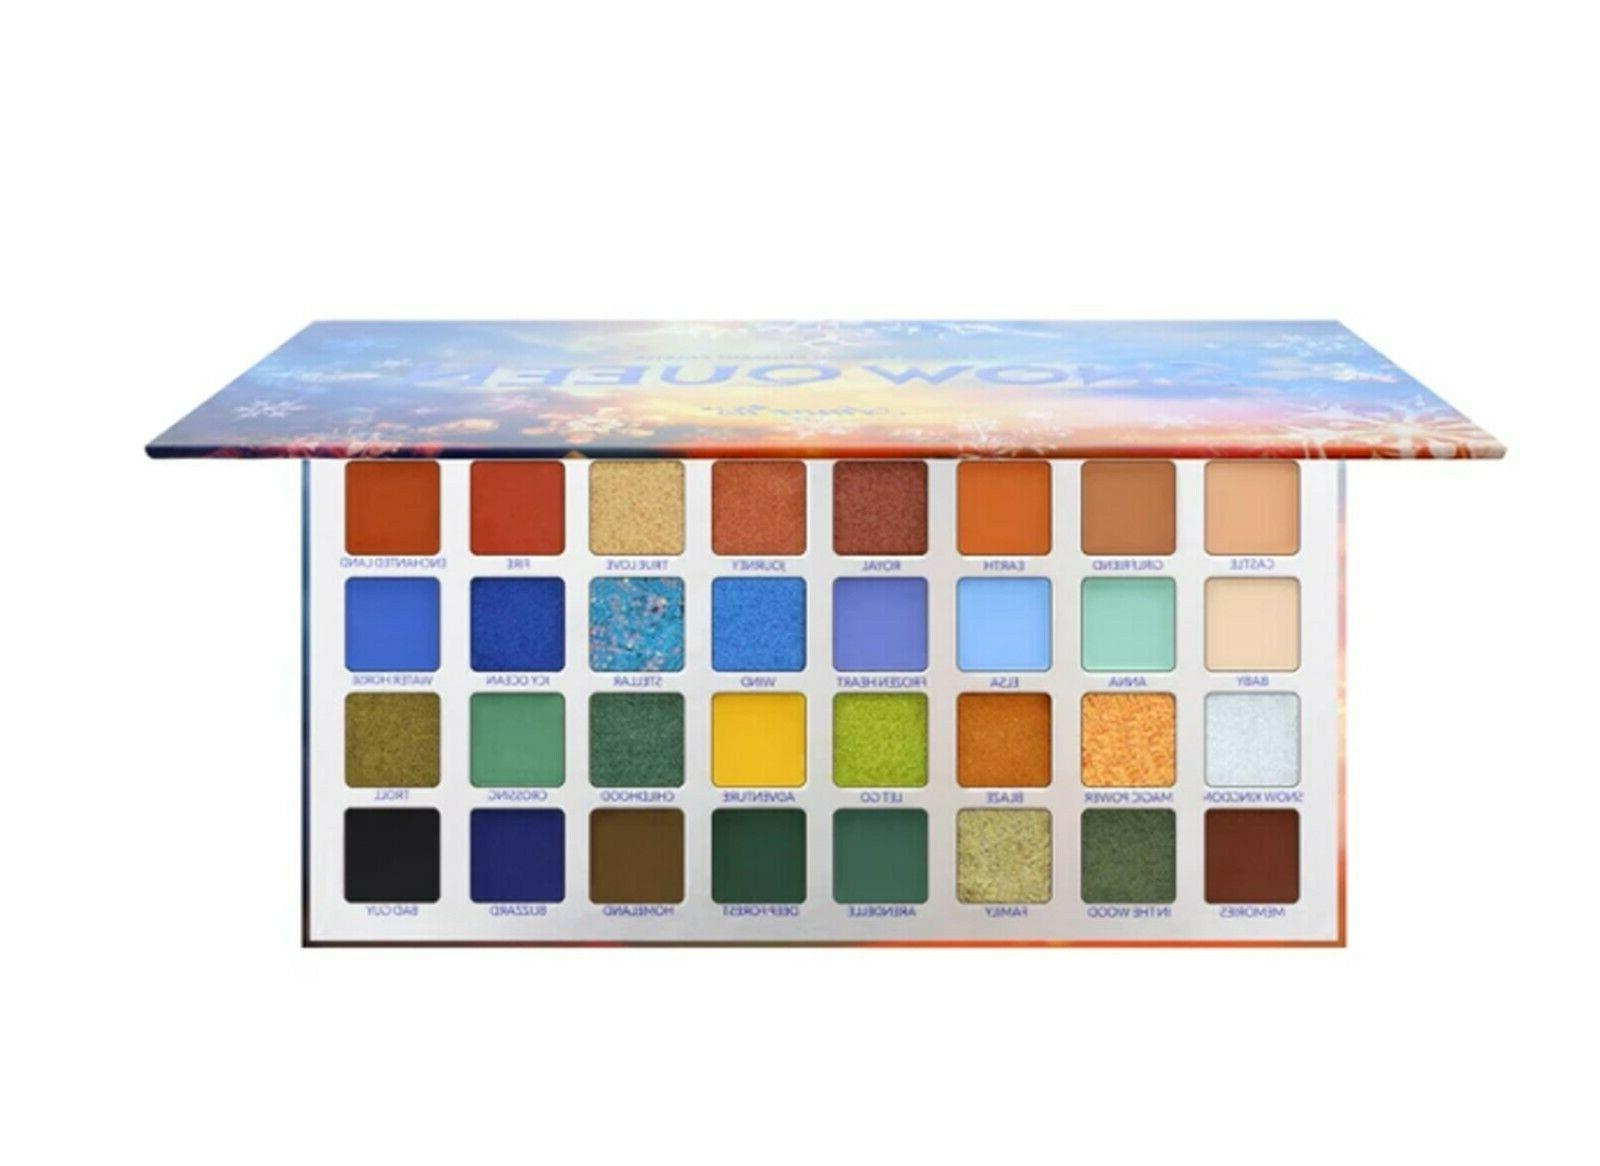 Amorus Eyeshadow Palette Highly Pigmented Colors, NEW!